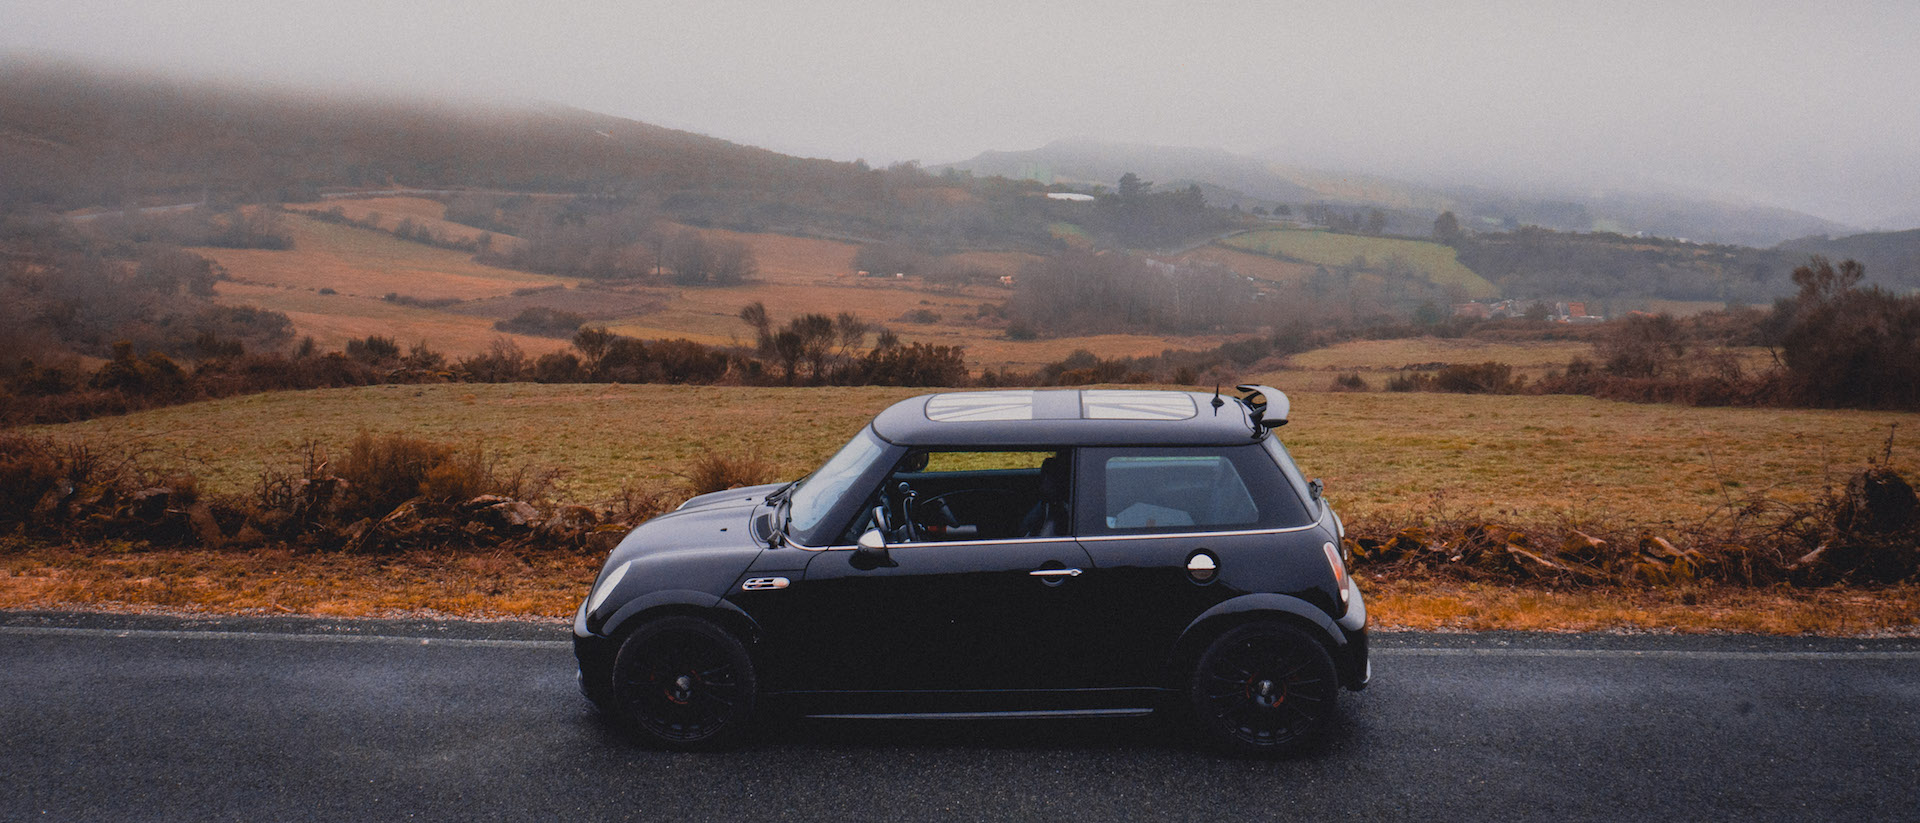 003 BLACK STUDIO MINI R53.jpg